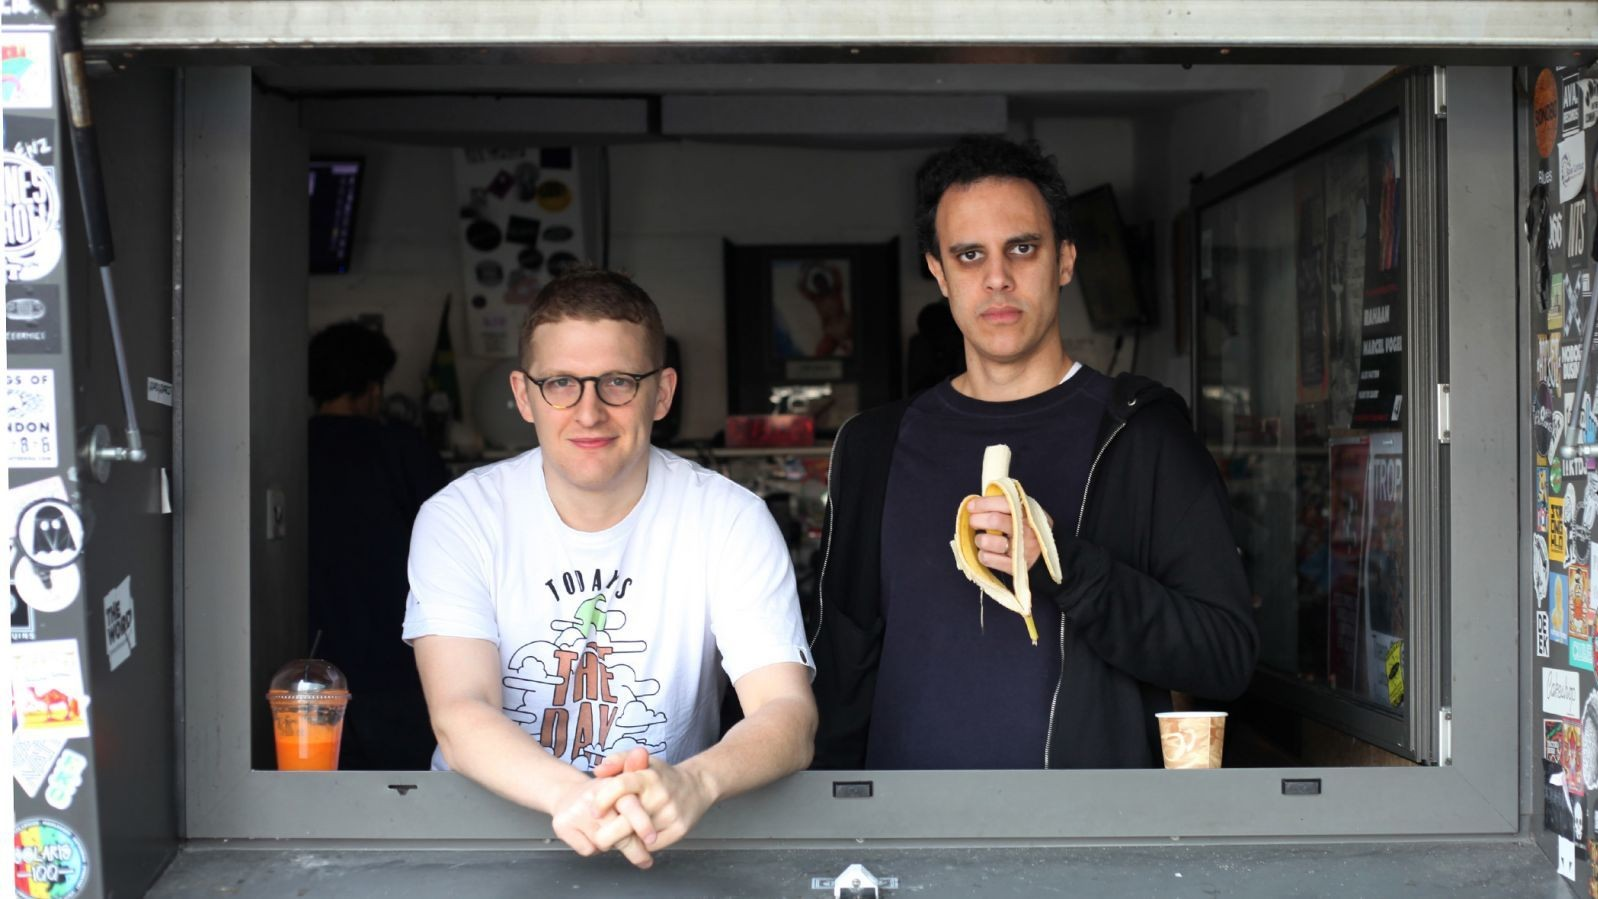 Get Your Weekend Grooving with Four Tet b2b Floating Points on NTS Radio